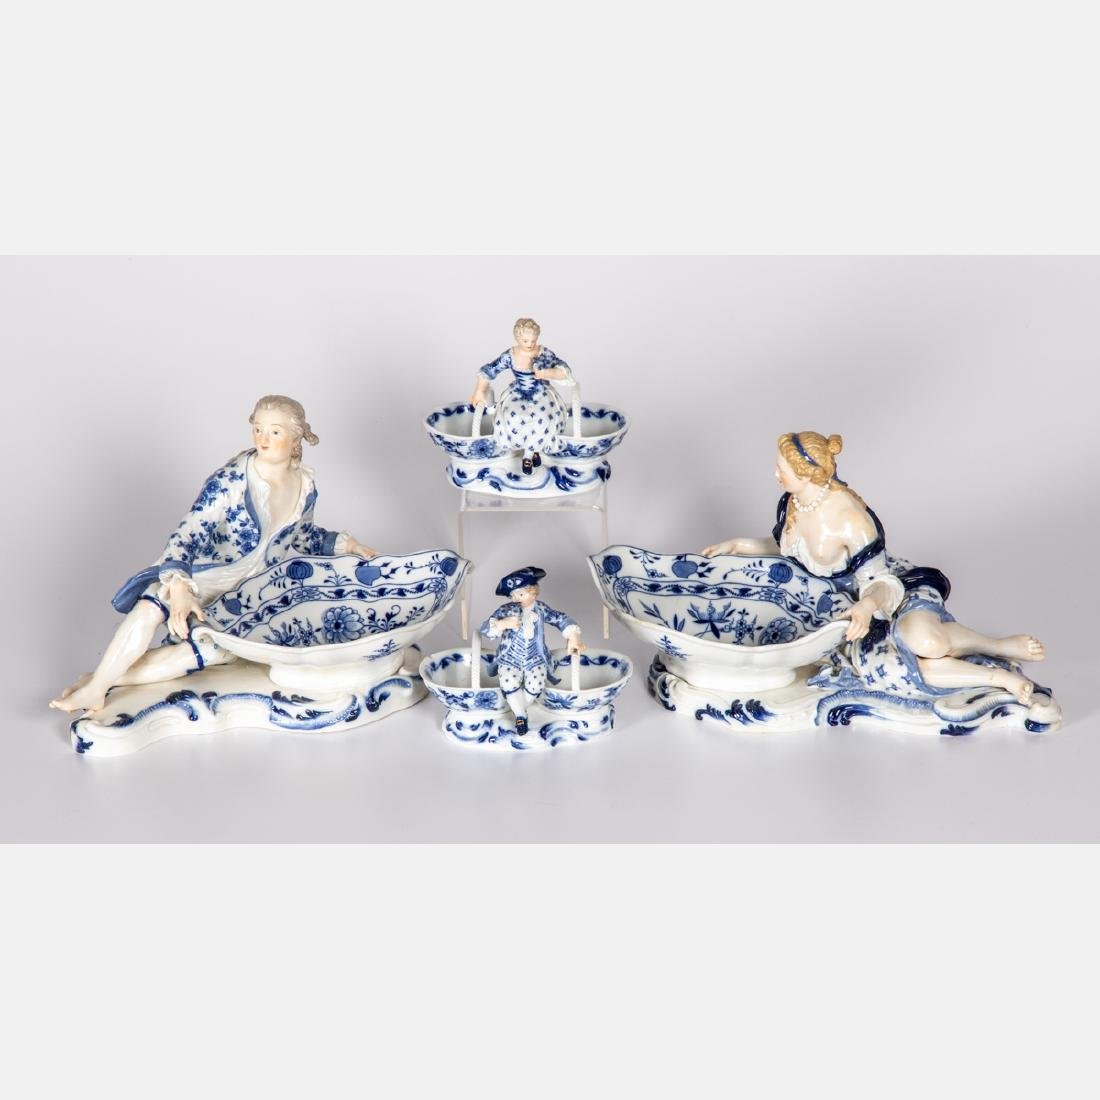 A Pair of Meissen Porcelain Figural Meat Dishes in the